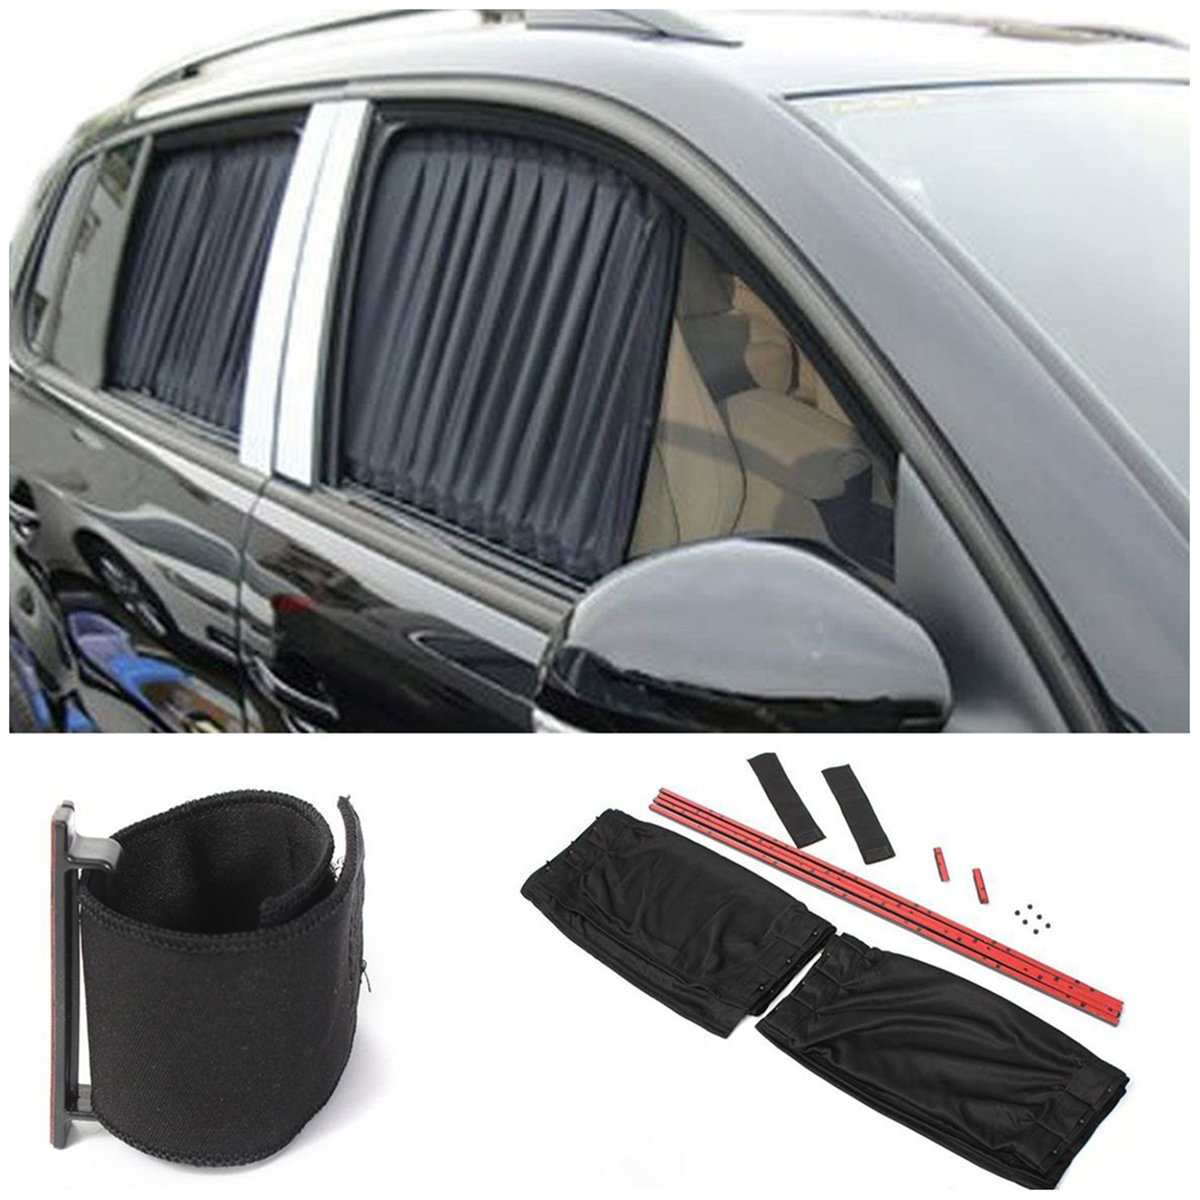 USDREAM 2PCS 70cm Adjustable Car SUV Window Anti-UV Sun Shade Drape Visor Curtain Valance USDREAMD USDREAMD-0702725